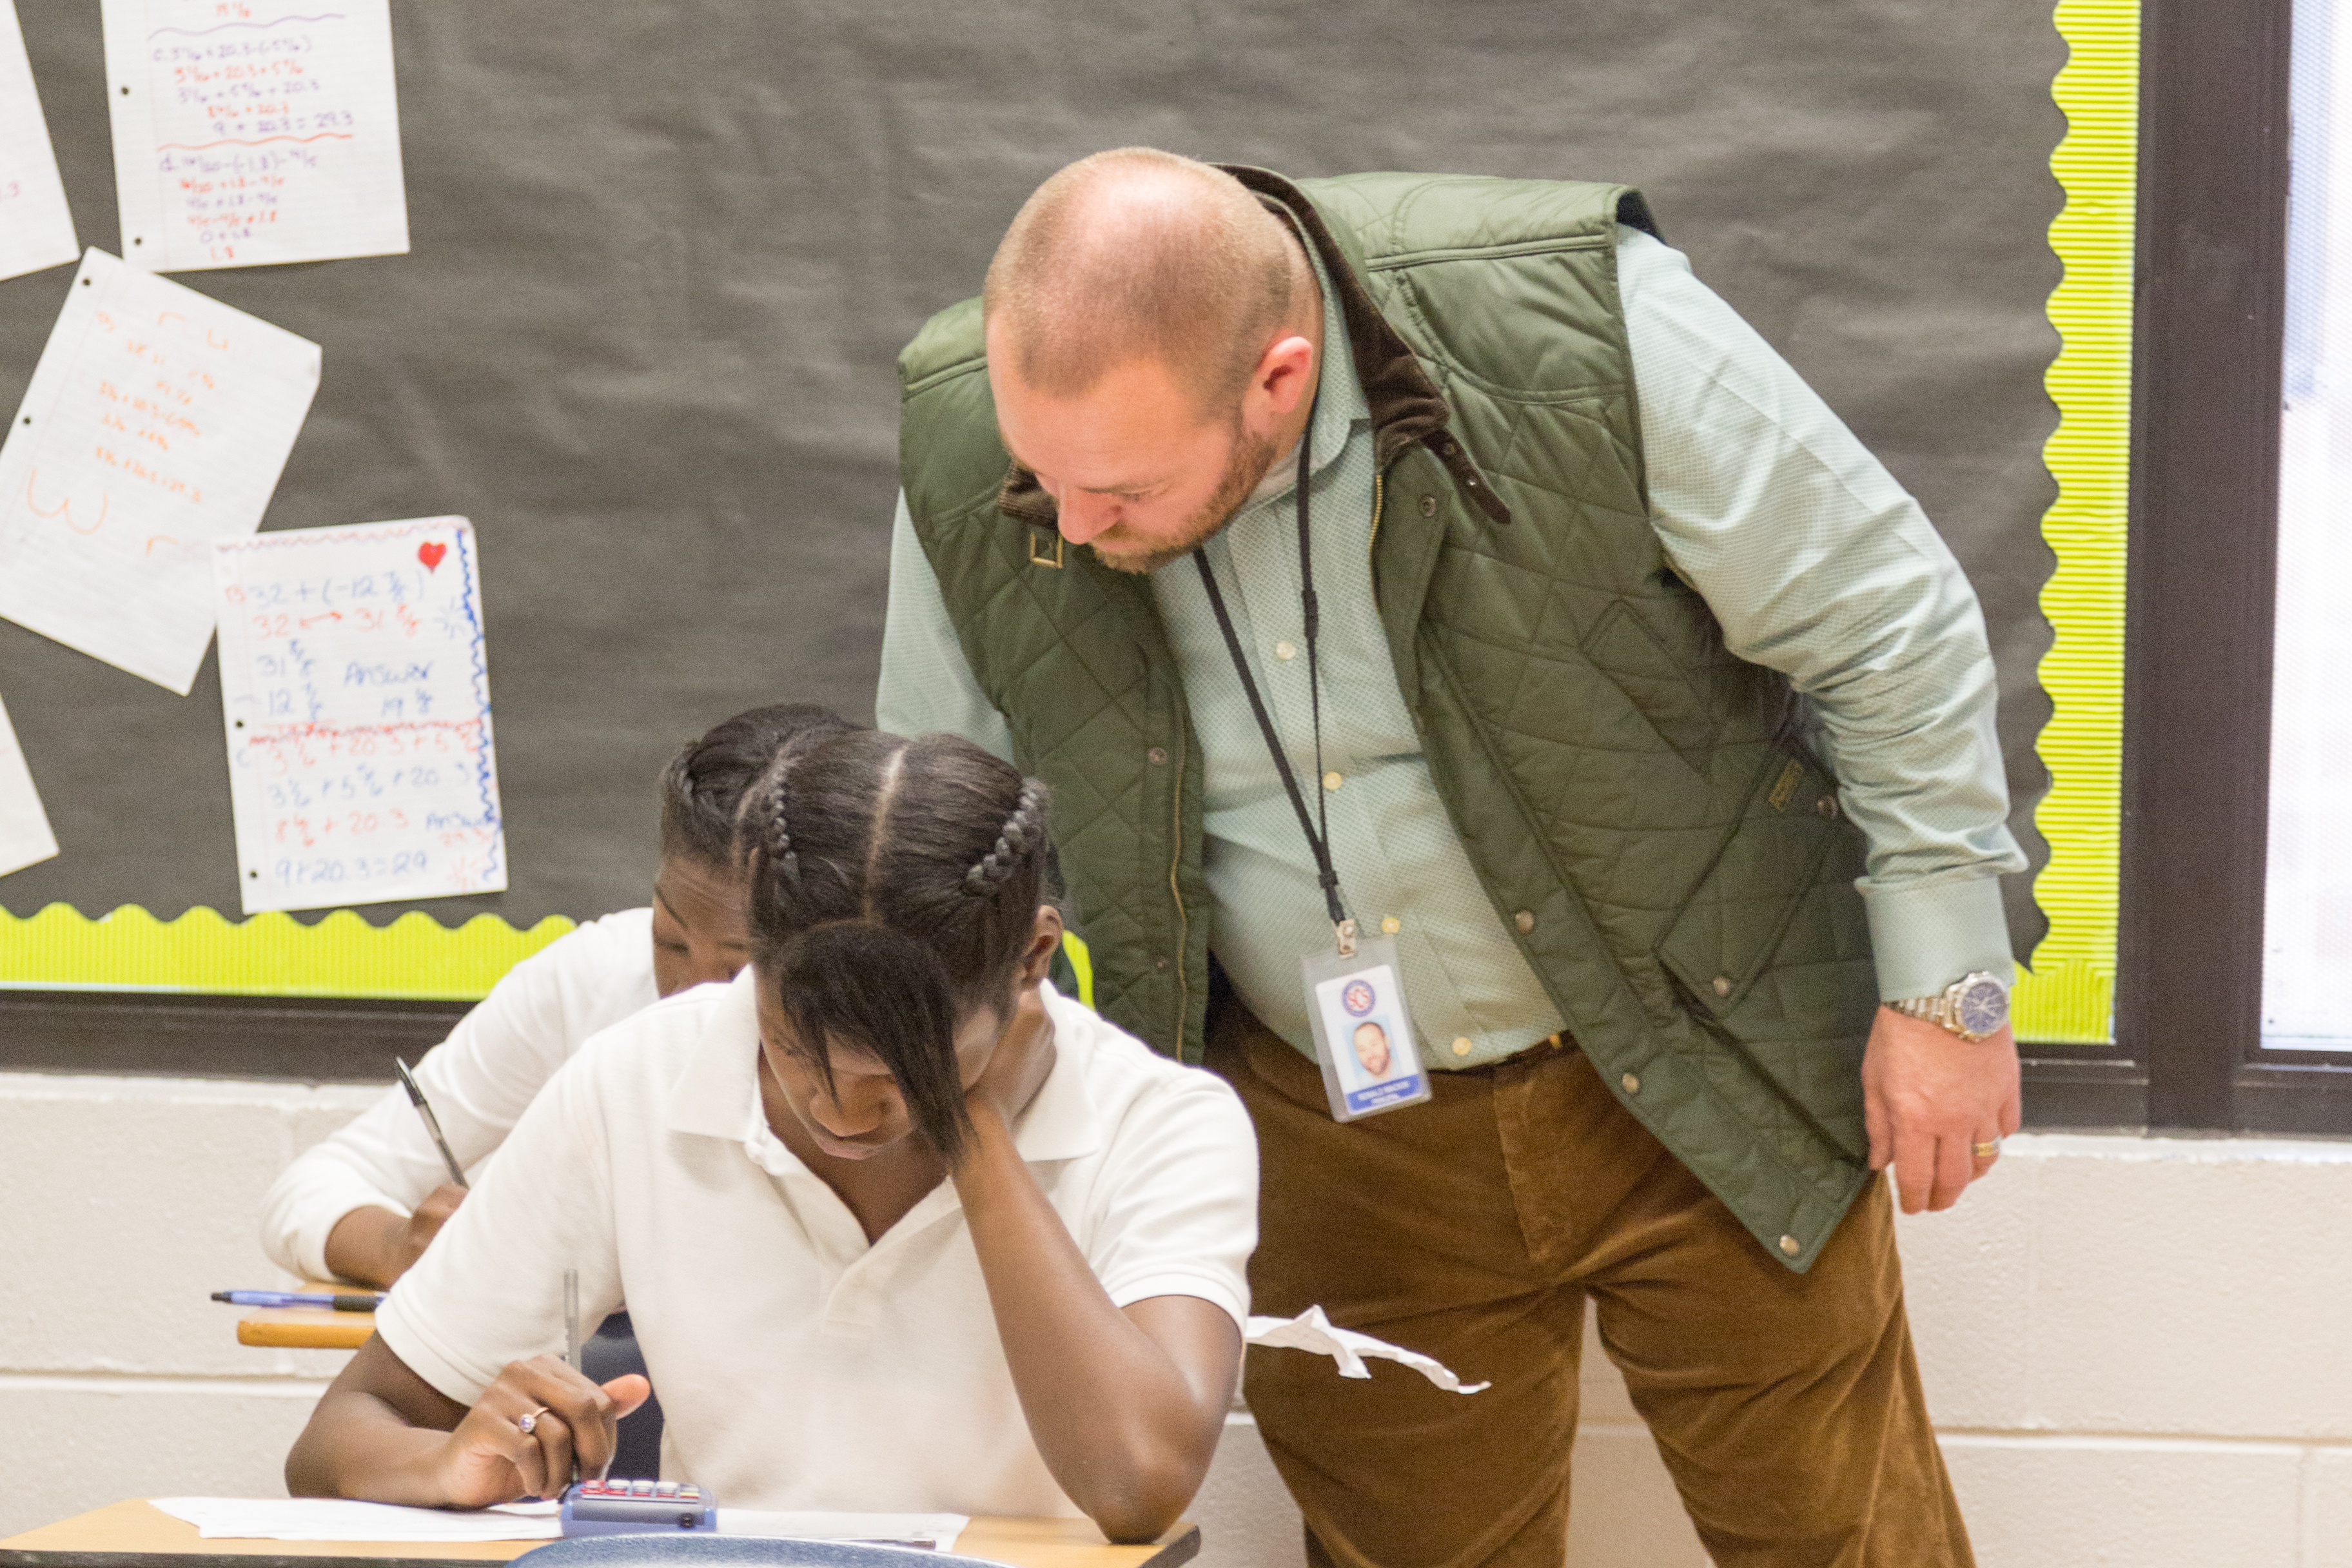 Ronnie Mackin checks on a student's work in 2016 when he was principal at Raleigh Egypt Middle School. Mackin was chief administrator the following school year at Trezevant High School, now the center of several investigations that started as a result of Mackin's allegations.